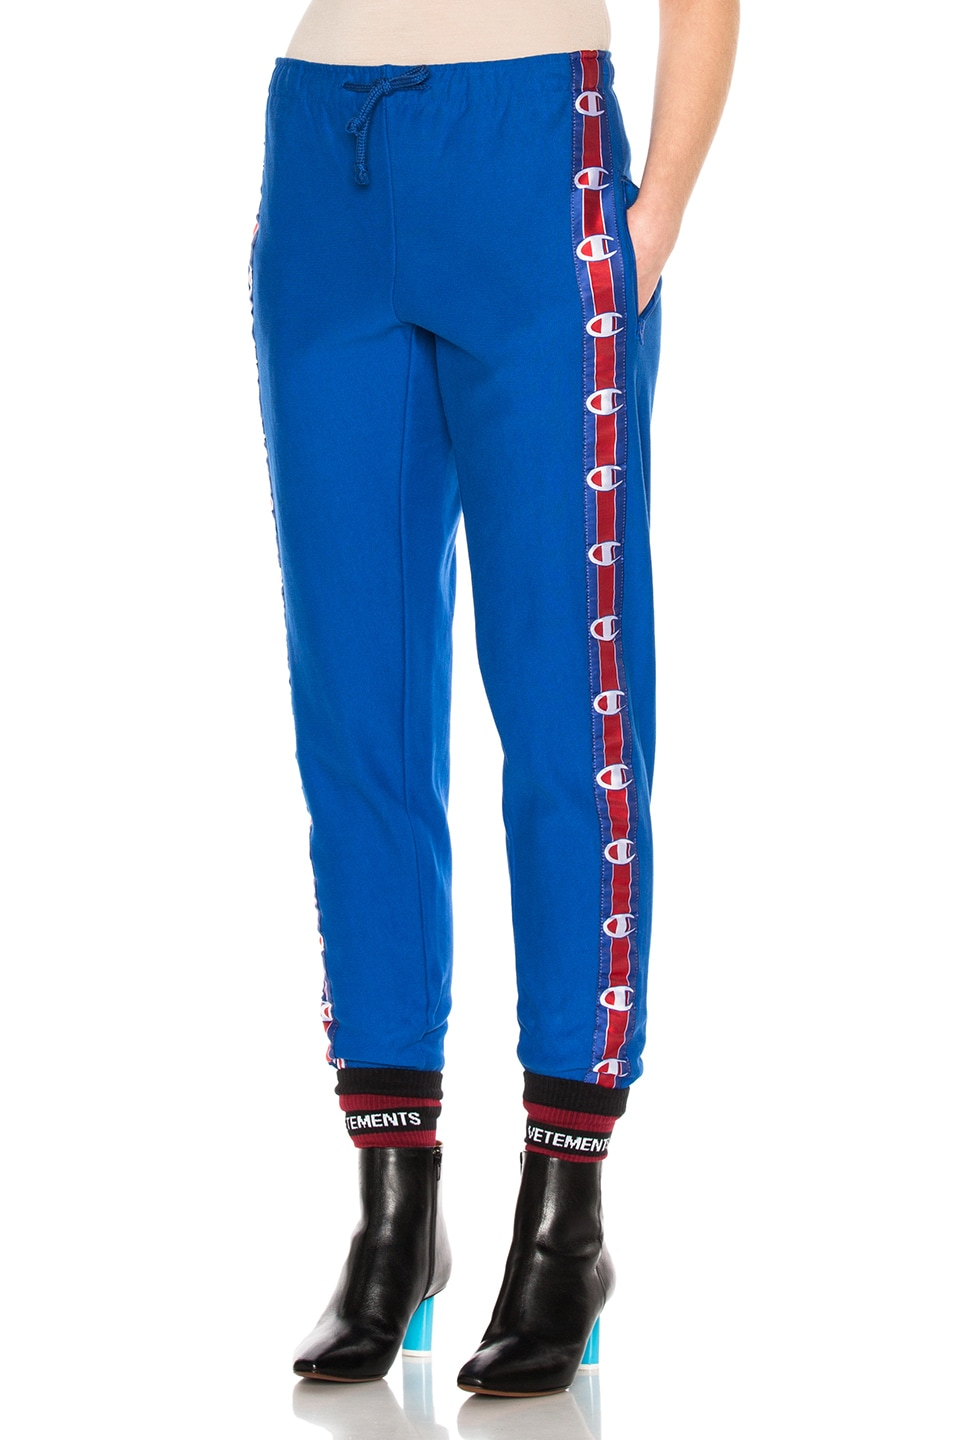 Image 1 of VETEMENTS x Champion Knee Shaped Tape Sweatpants in Blue